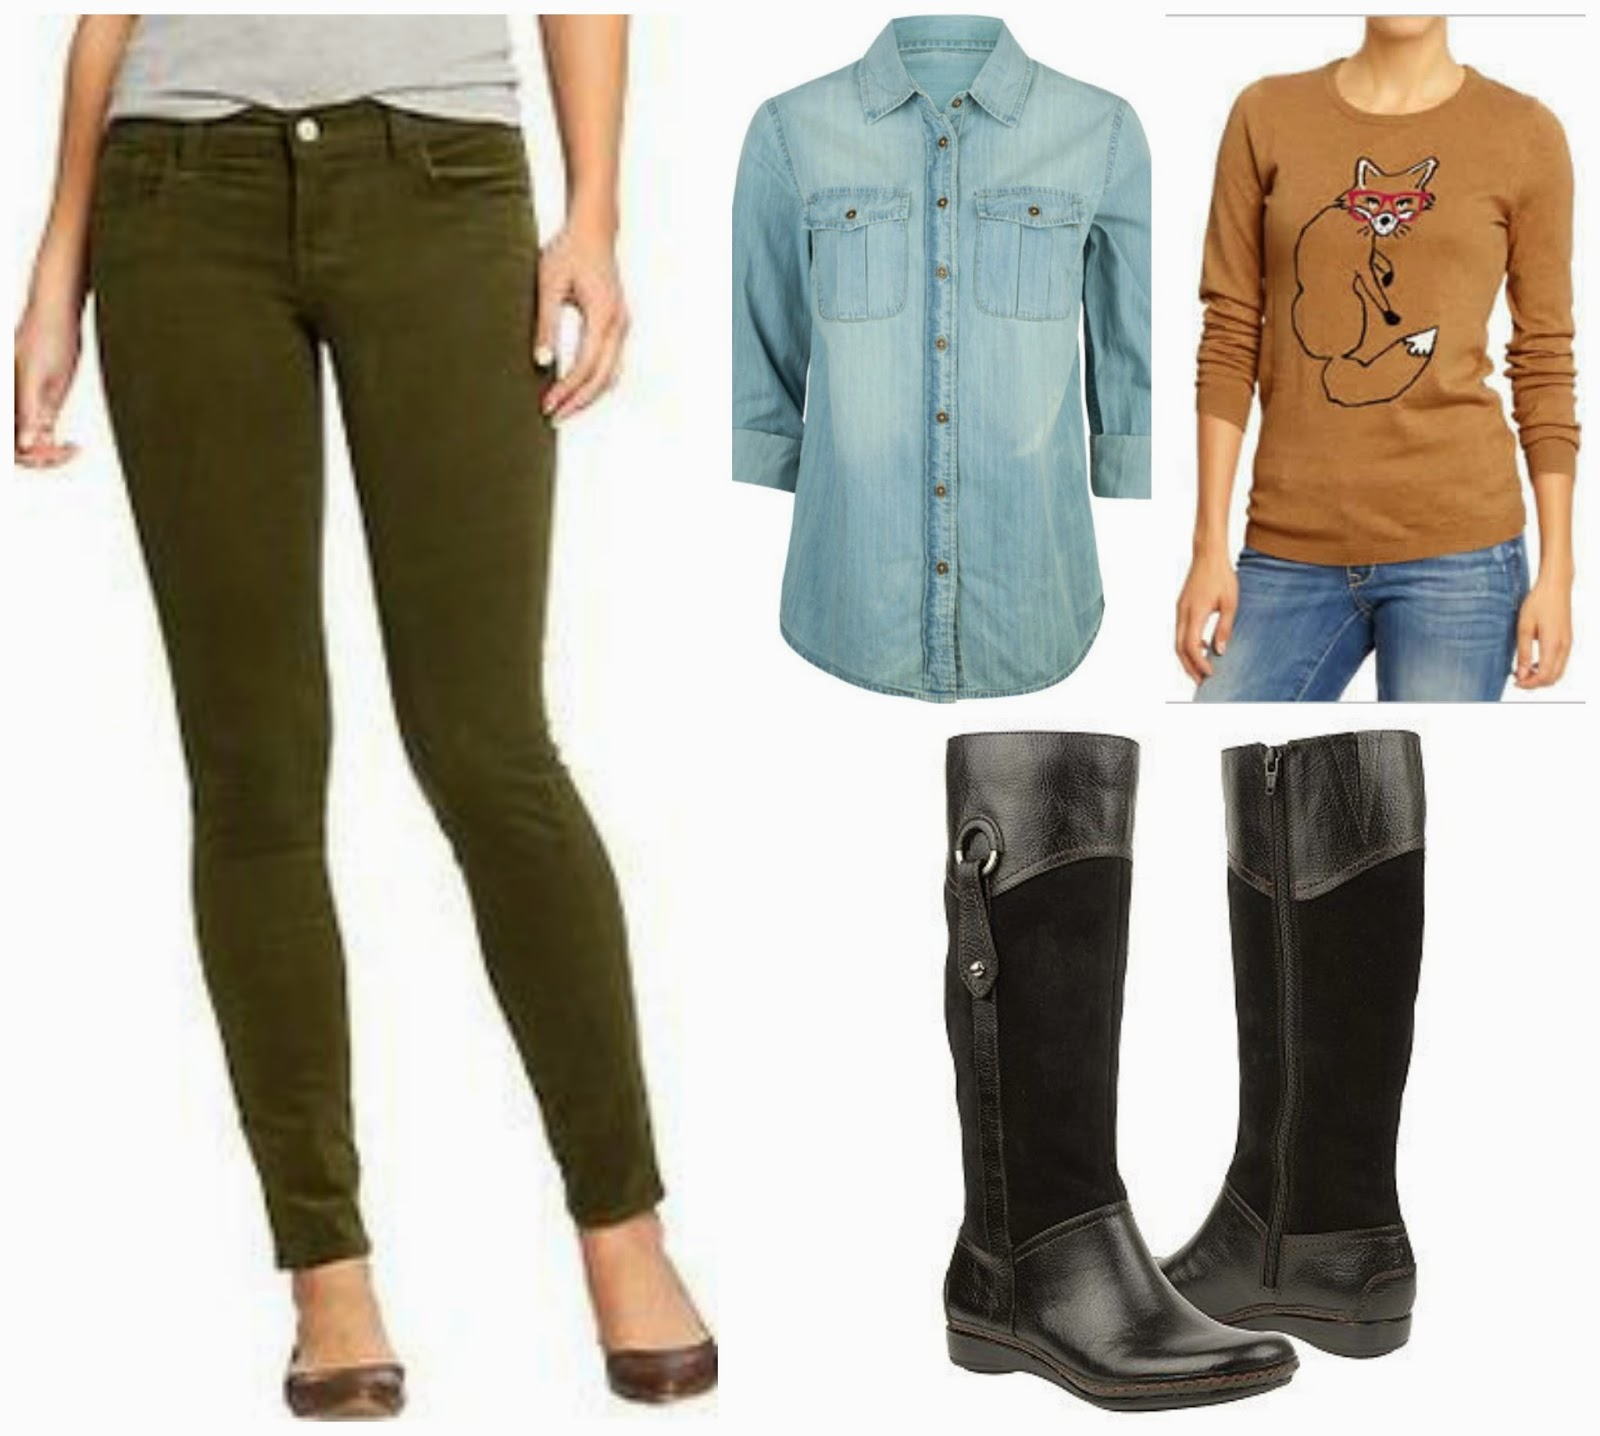 olive corduroy pants, chambray, fox sweater, boots